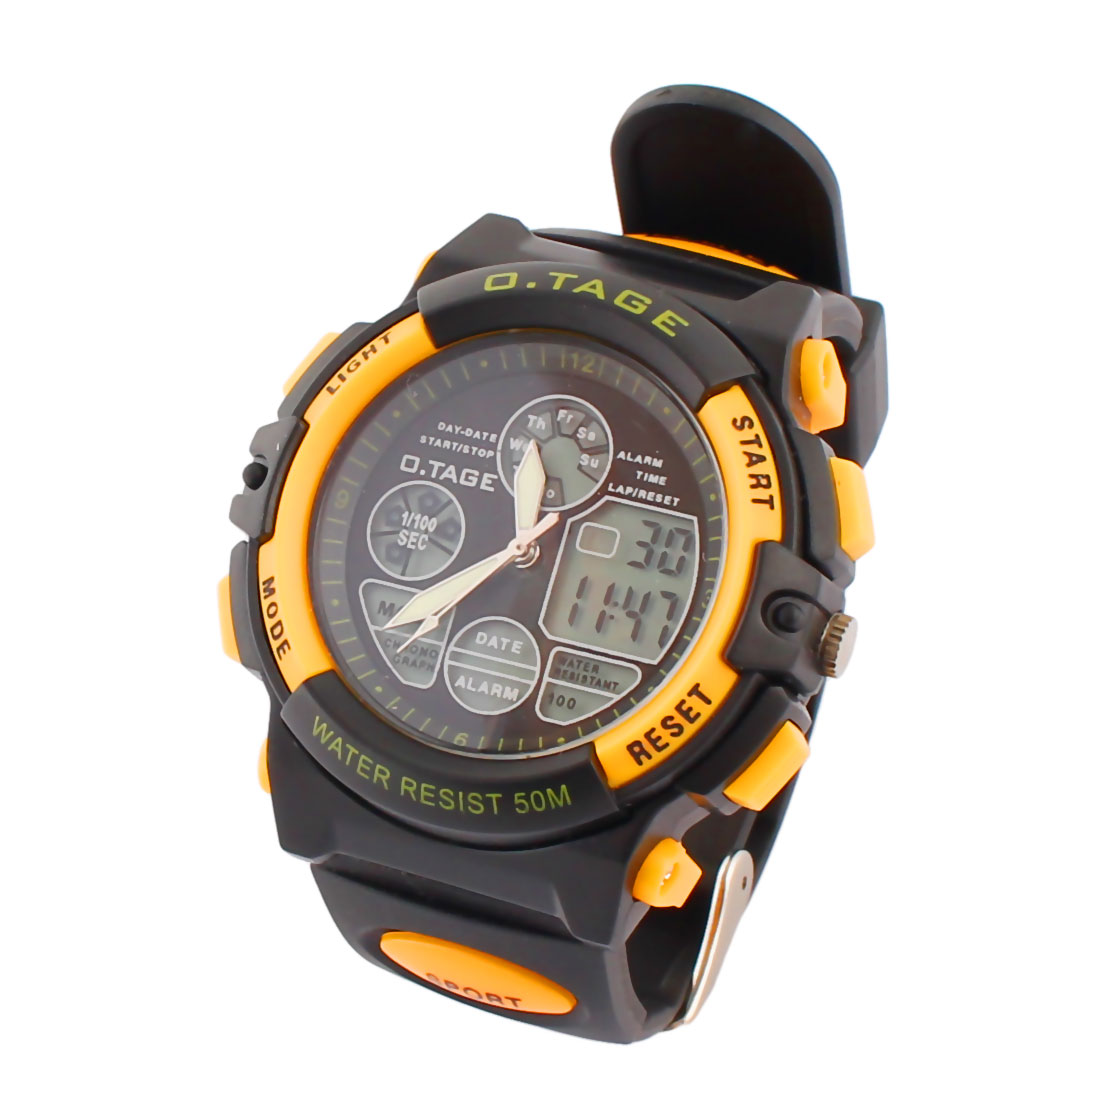 Outdoor Sports Water Resistant Luminous Peak Climbing Watch Black Yellow